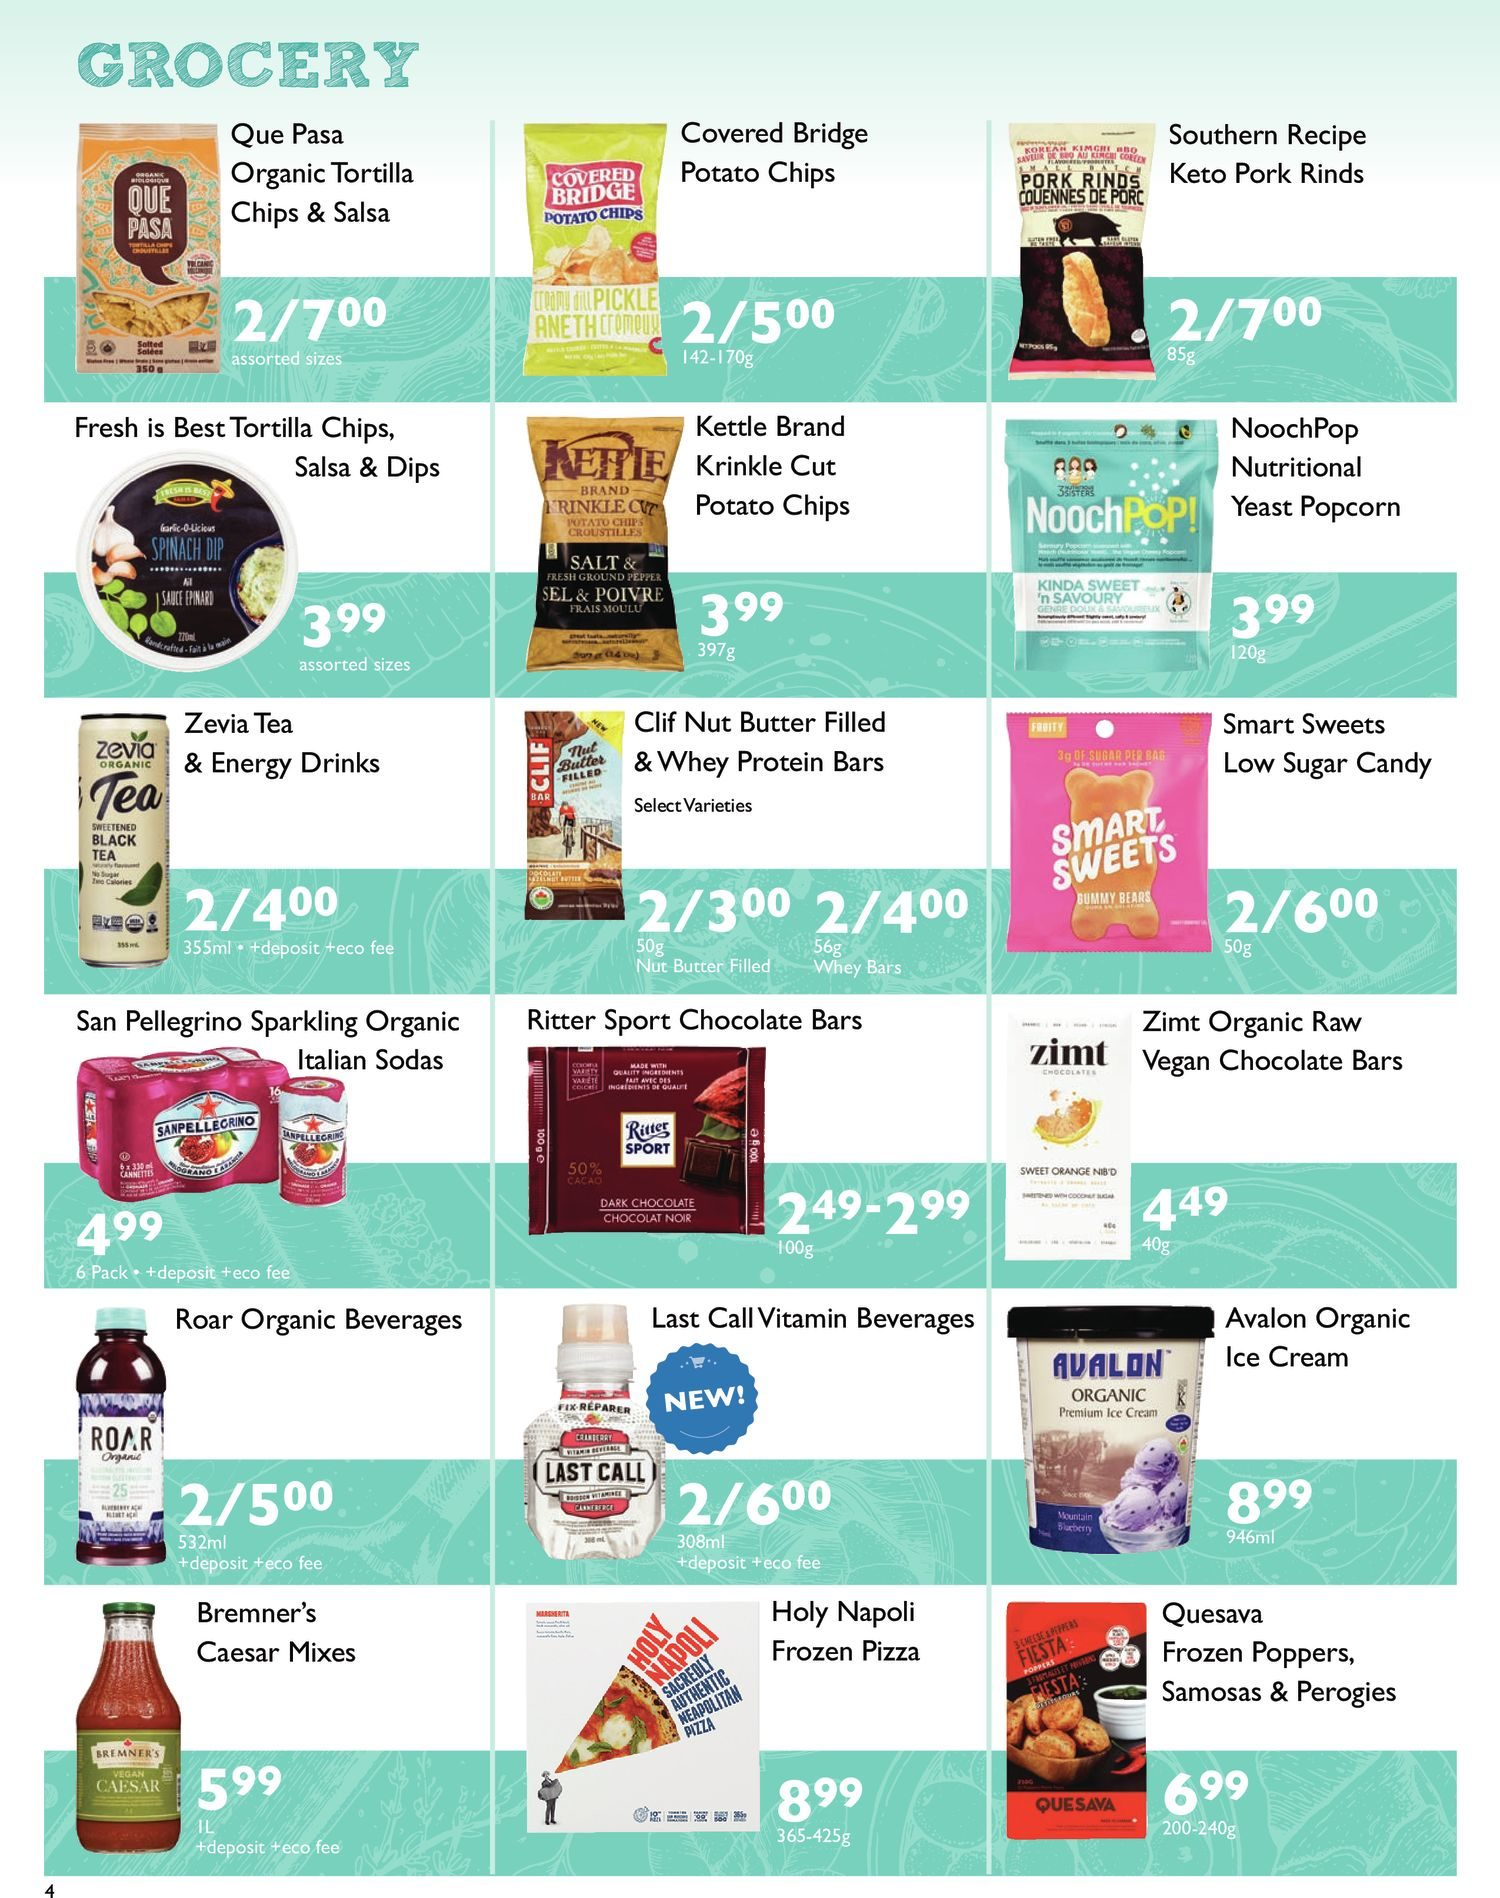 Choices Markets - Weekly Flyer Specials - Page 4